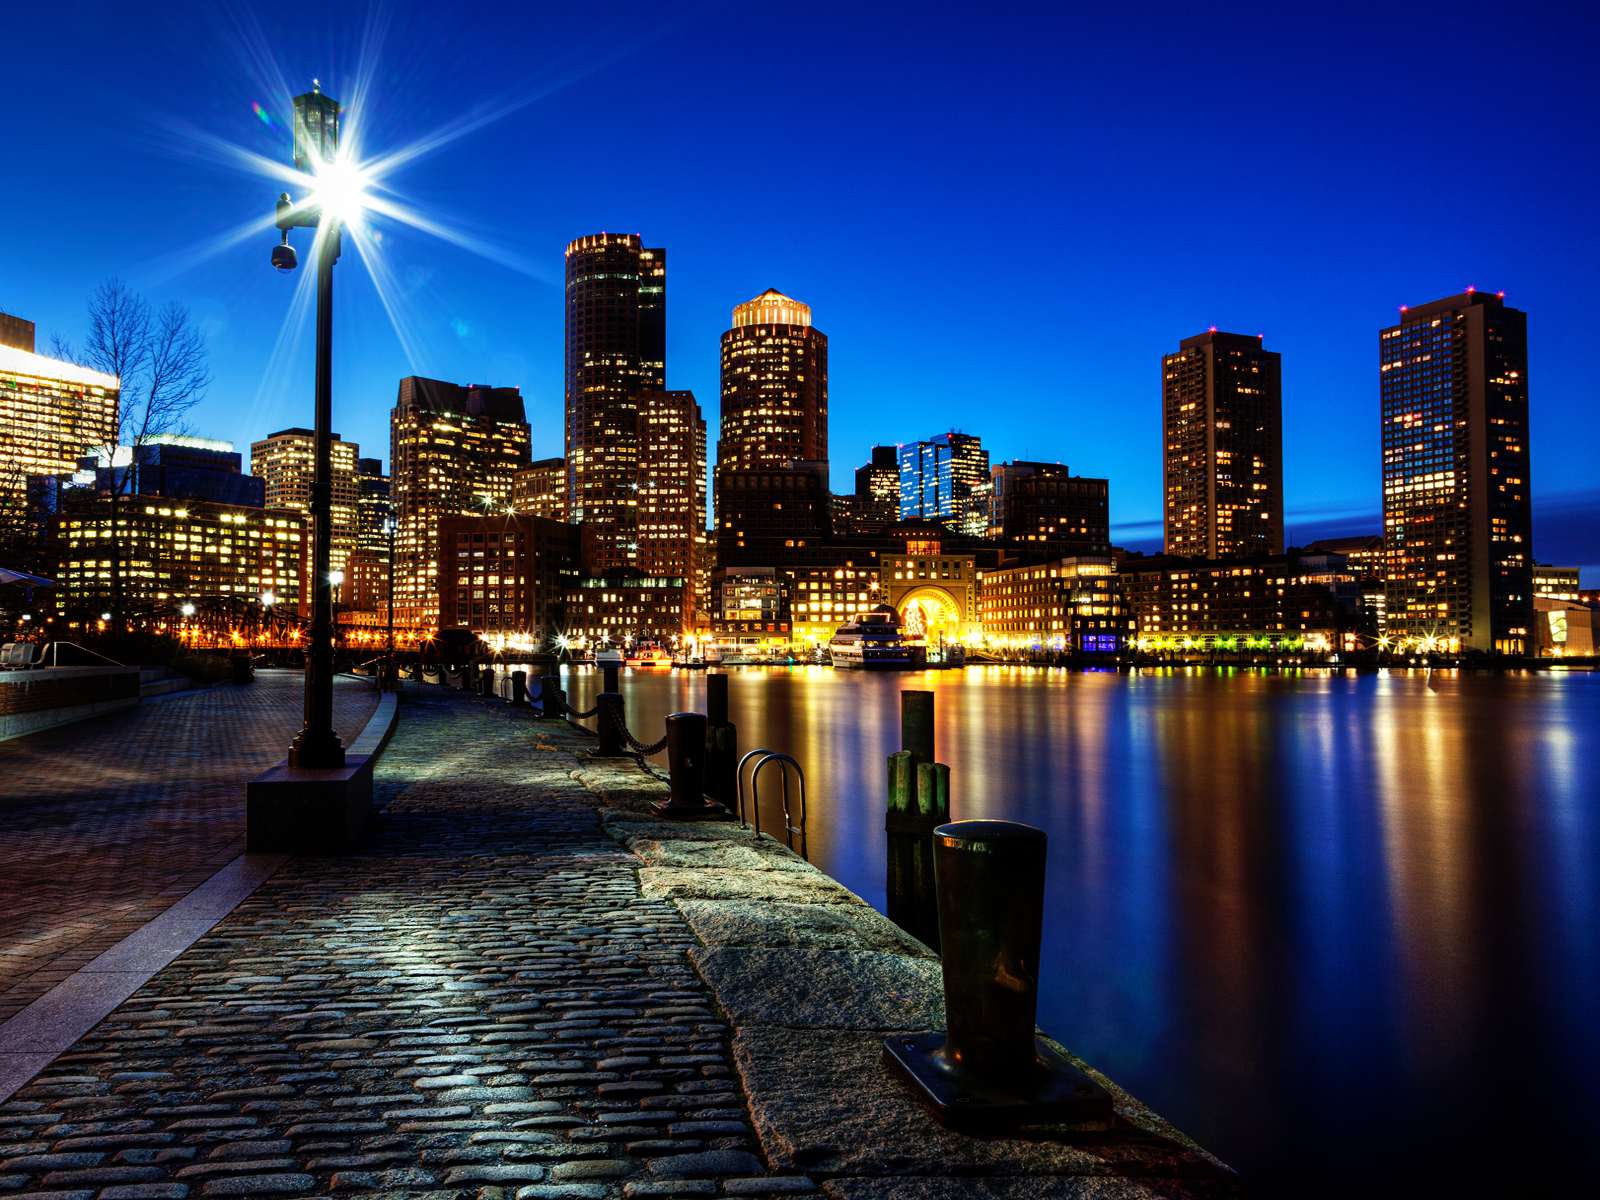 HD Quality Images of Boston » #39975881 1600x1200 px